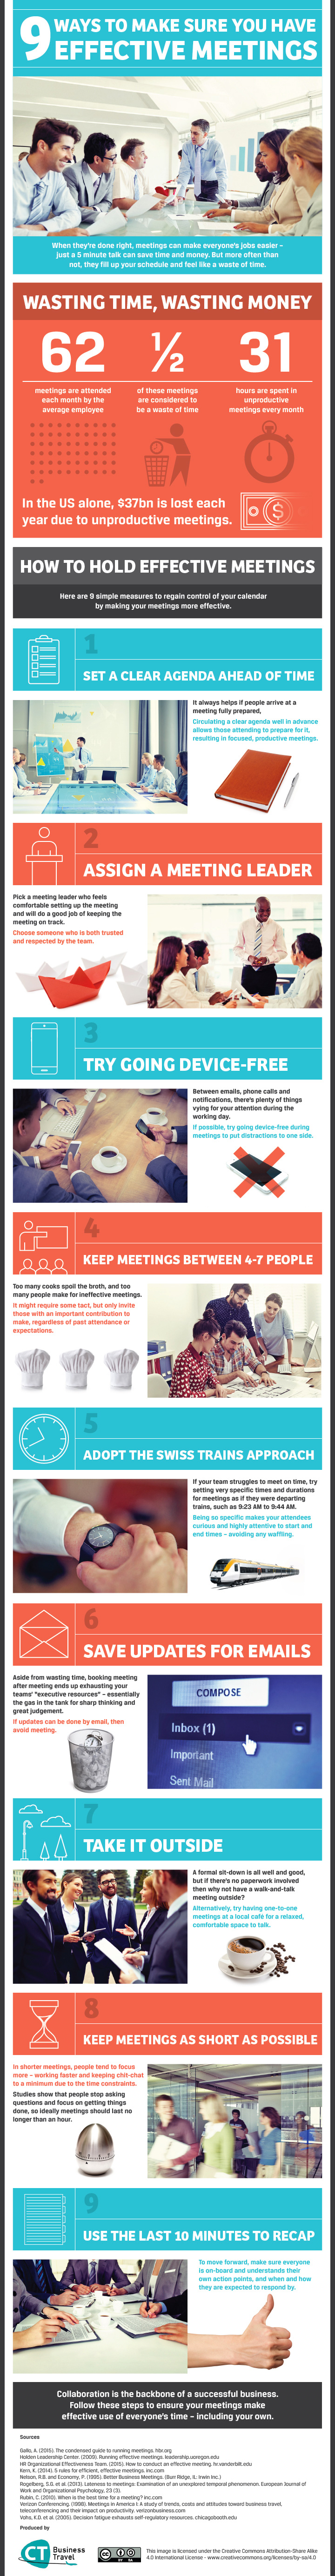 How To Make Meetings More Effective Cma